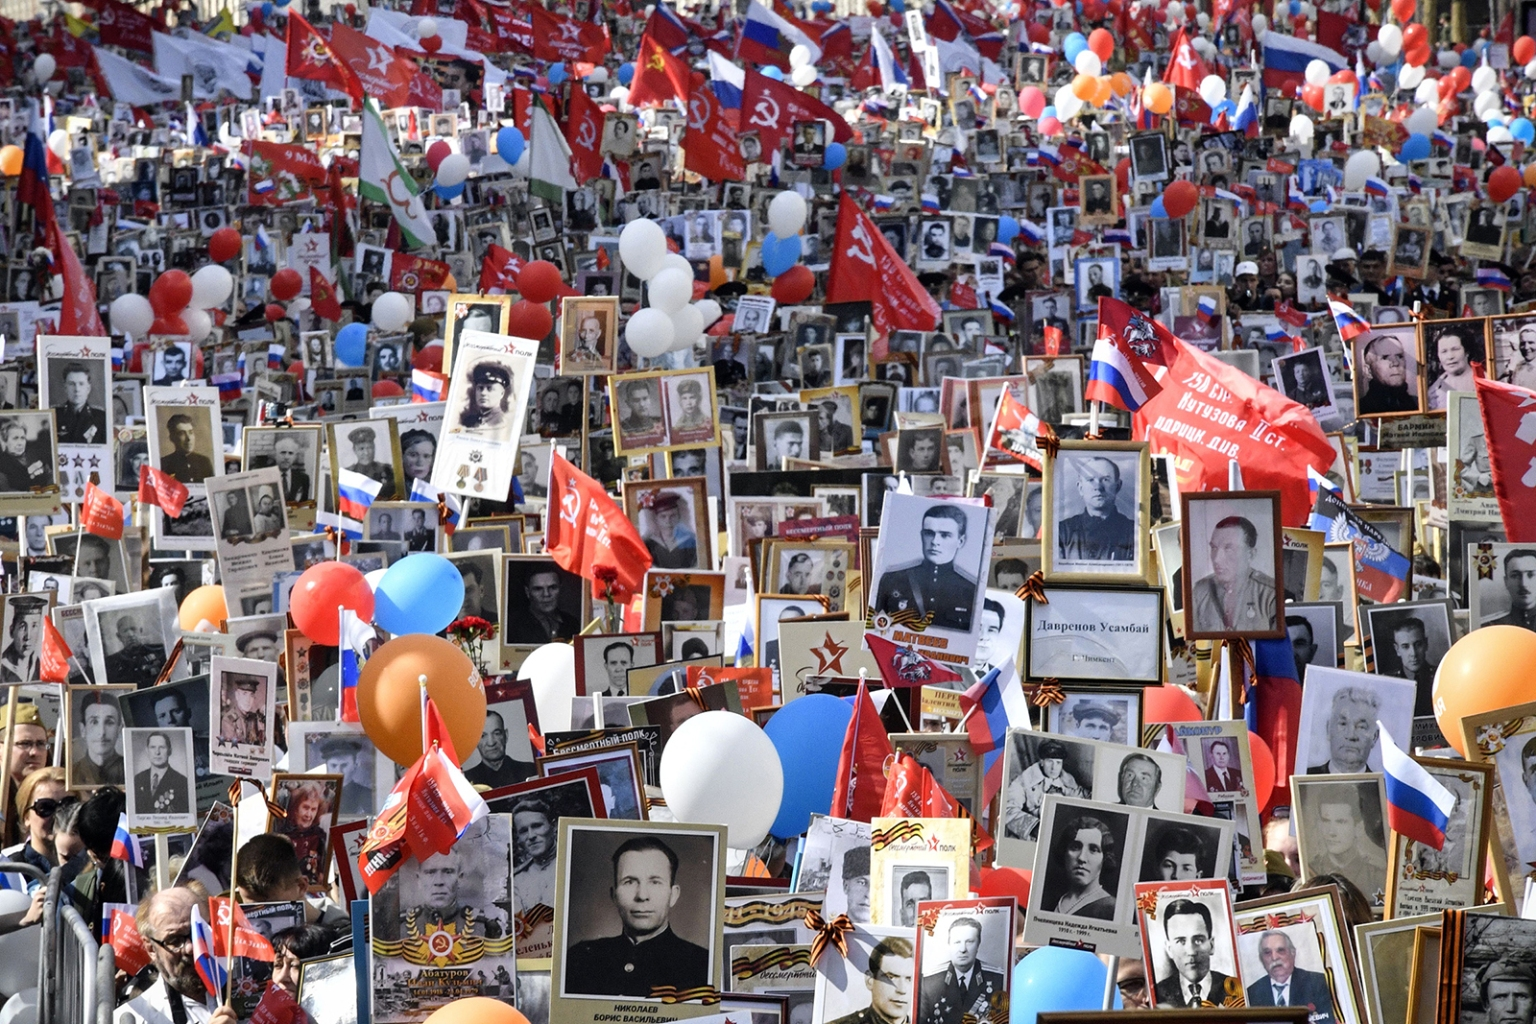 Tens of thousands of people gather in downtown Moscow holding portraits of their relatives and World War II soldiers during the Immortal Regiment march there on May 9. The portraits show some of the 27 million Soviet soldiers and citizens estimated to have died in the war. ALEXANDER NEMENOV/AFP/Getty Images